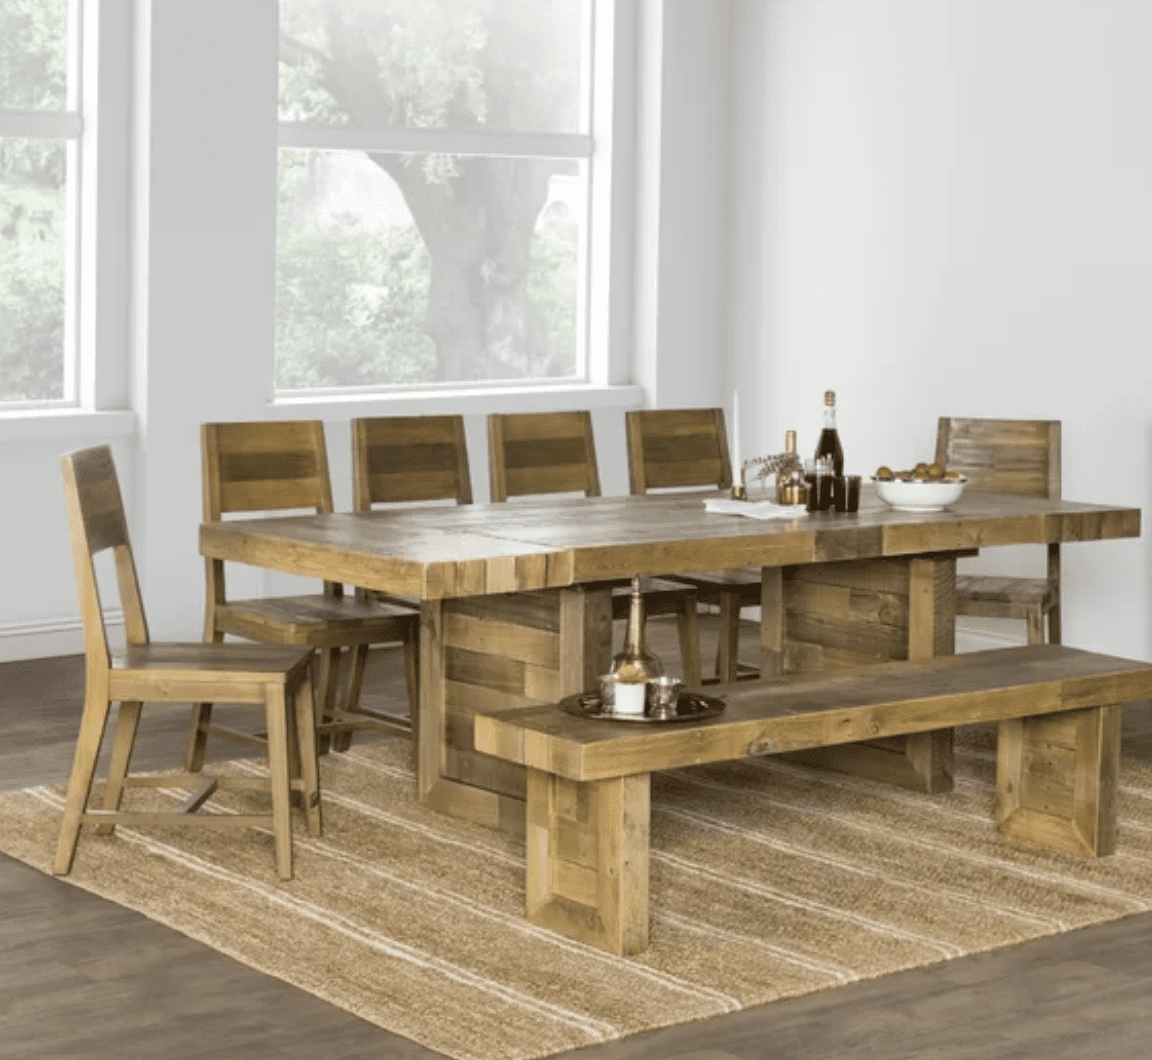 Fashionable The 9 Best Dining Room Tables Of 2020 Within Rustic Mid Century Modern 6 Seating Dining Tables In White And Natural Wood (View 4 of 30)